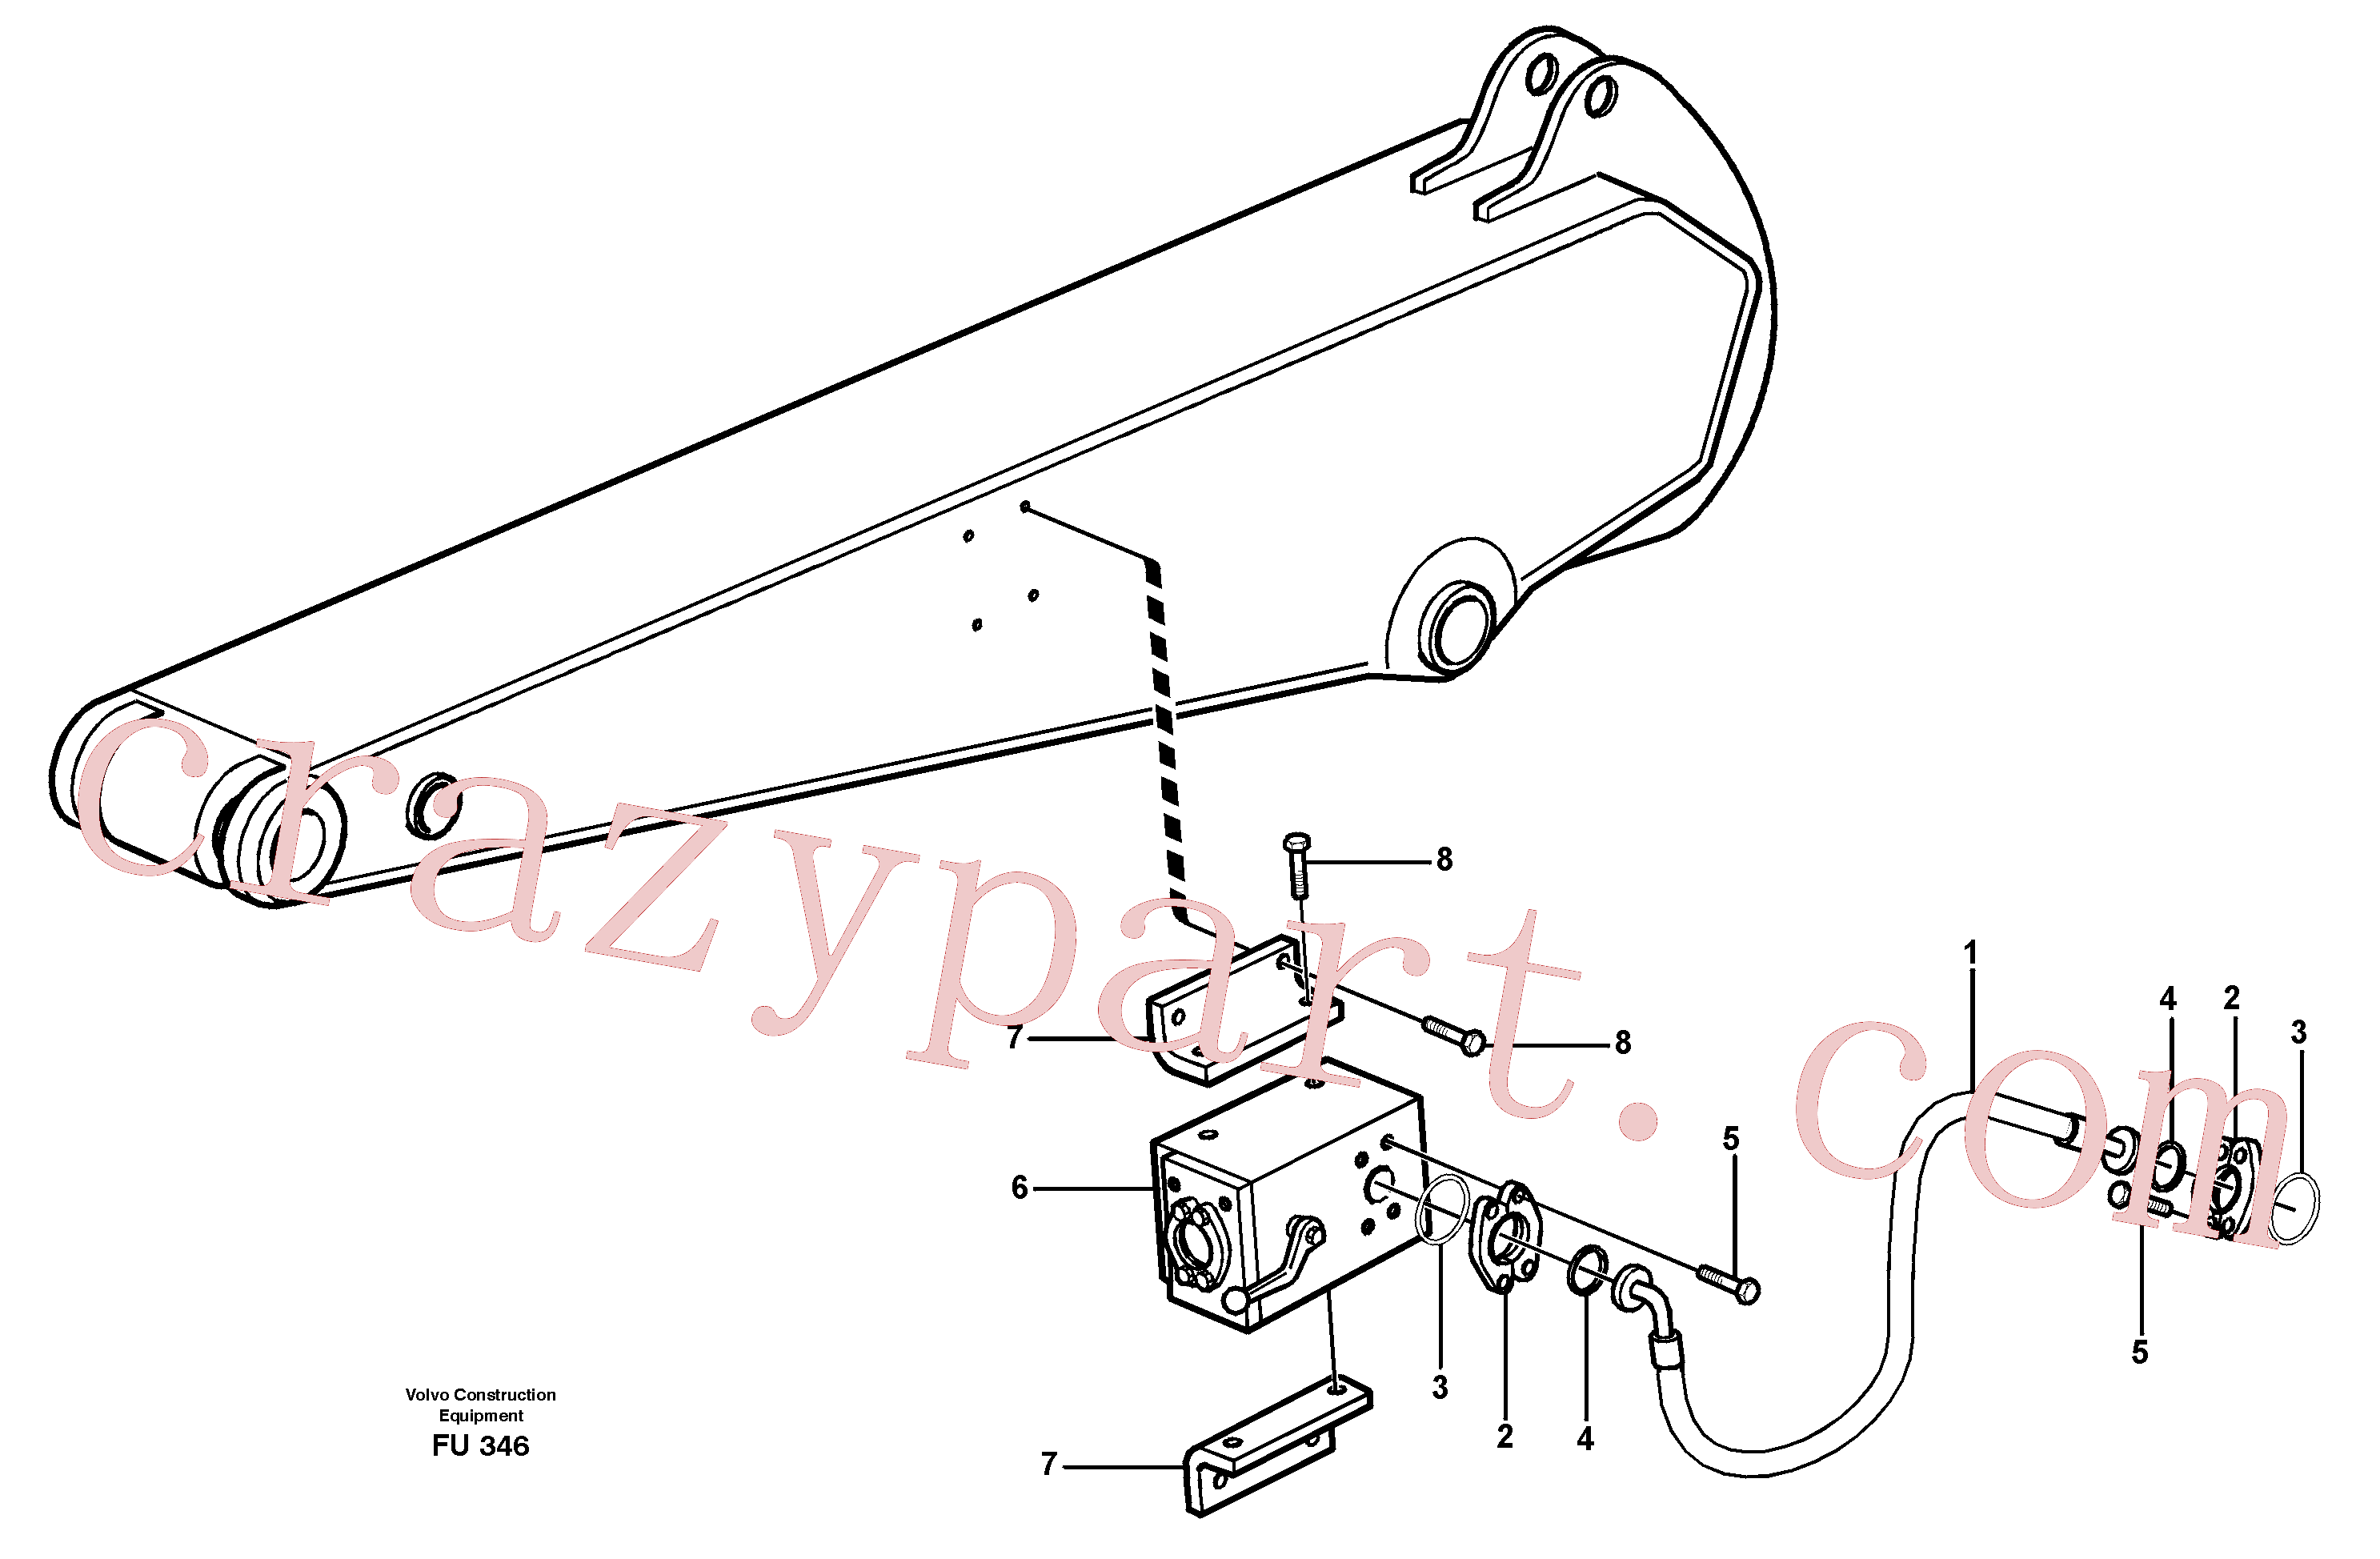 VOE14310135 for Volvo Hammer hydraulics on dipper arm, 2.4 m/ 2.9 m/ 3.5 m/ 4.1m(FU346 assembly)